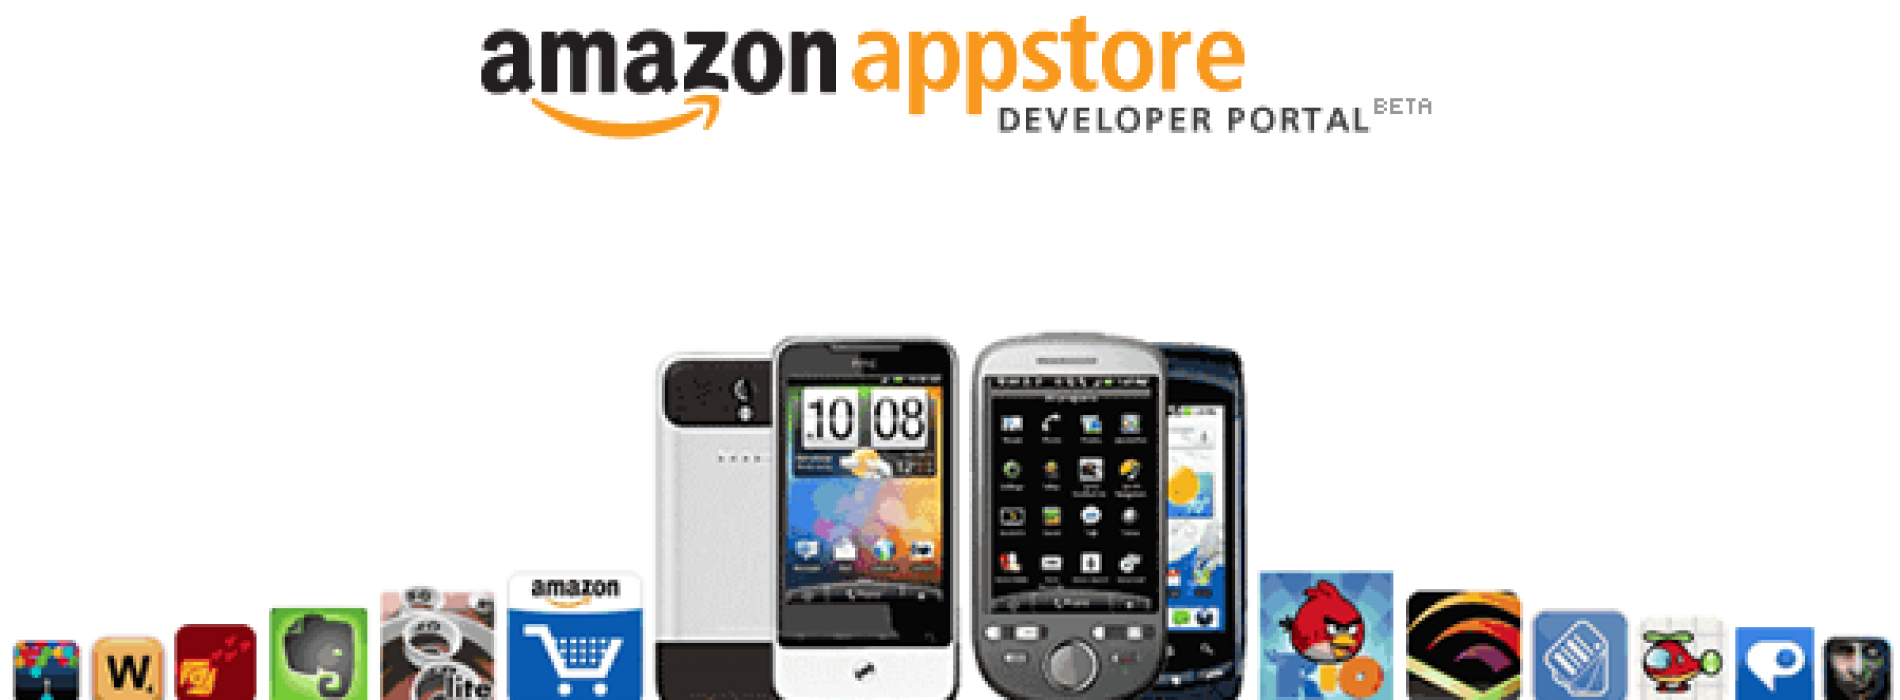 Amazon Appstore now offering in-app purchases